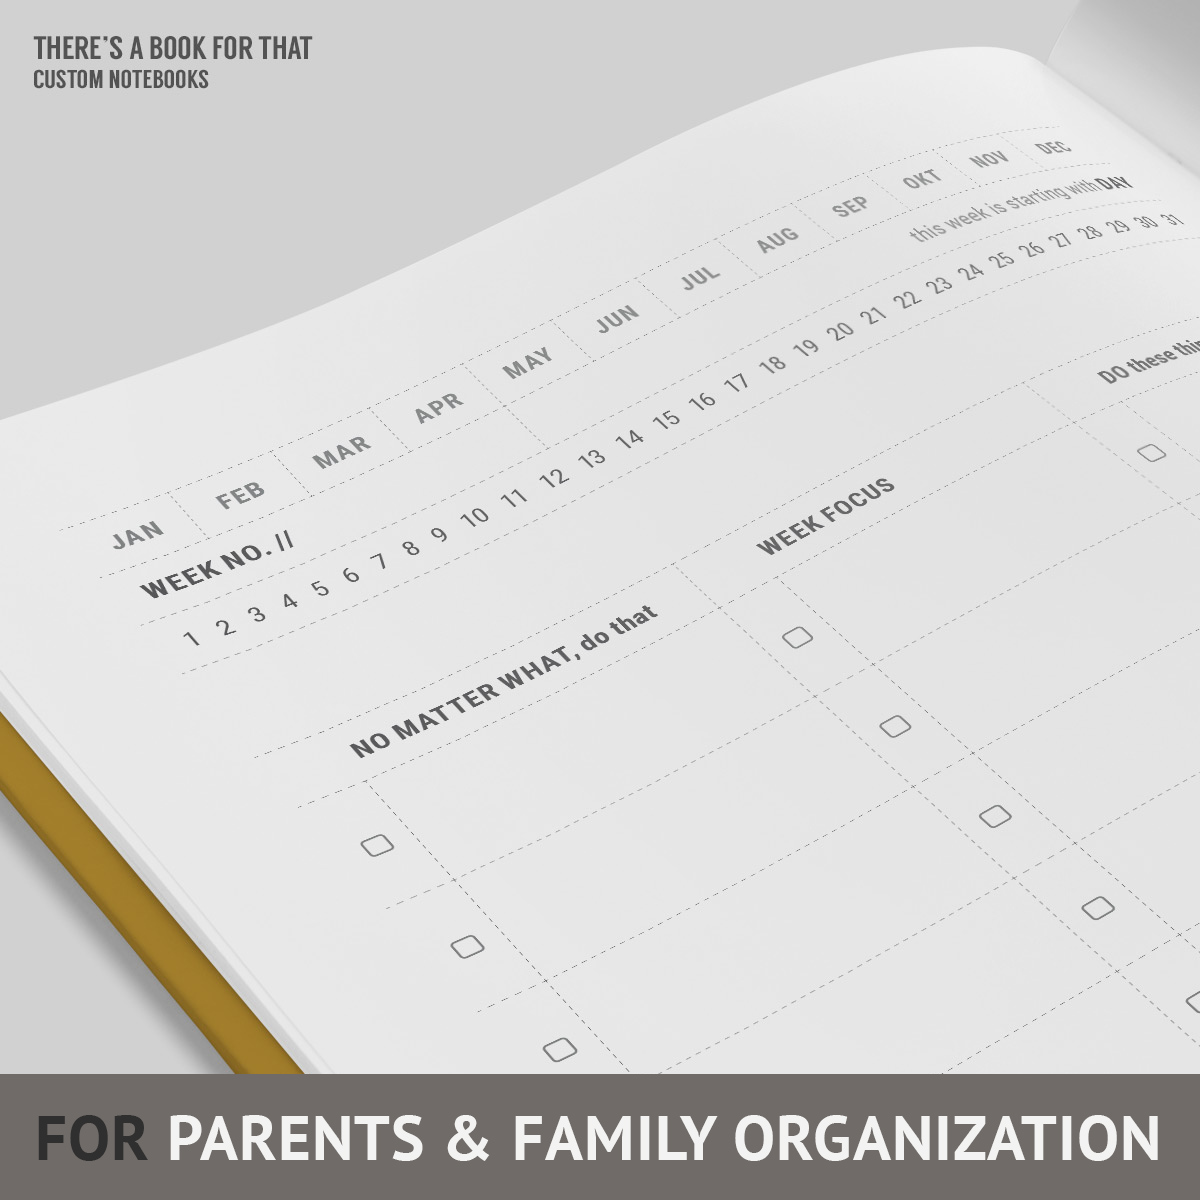 The notebook mother of 3 is helping you to keep track of your family business: todos, school, focus support, calls&e-mails, appointments, meals, fitness&health and whatnot. You will love this notebook for parents and family organization.